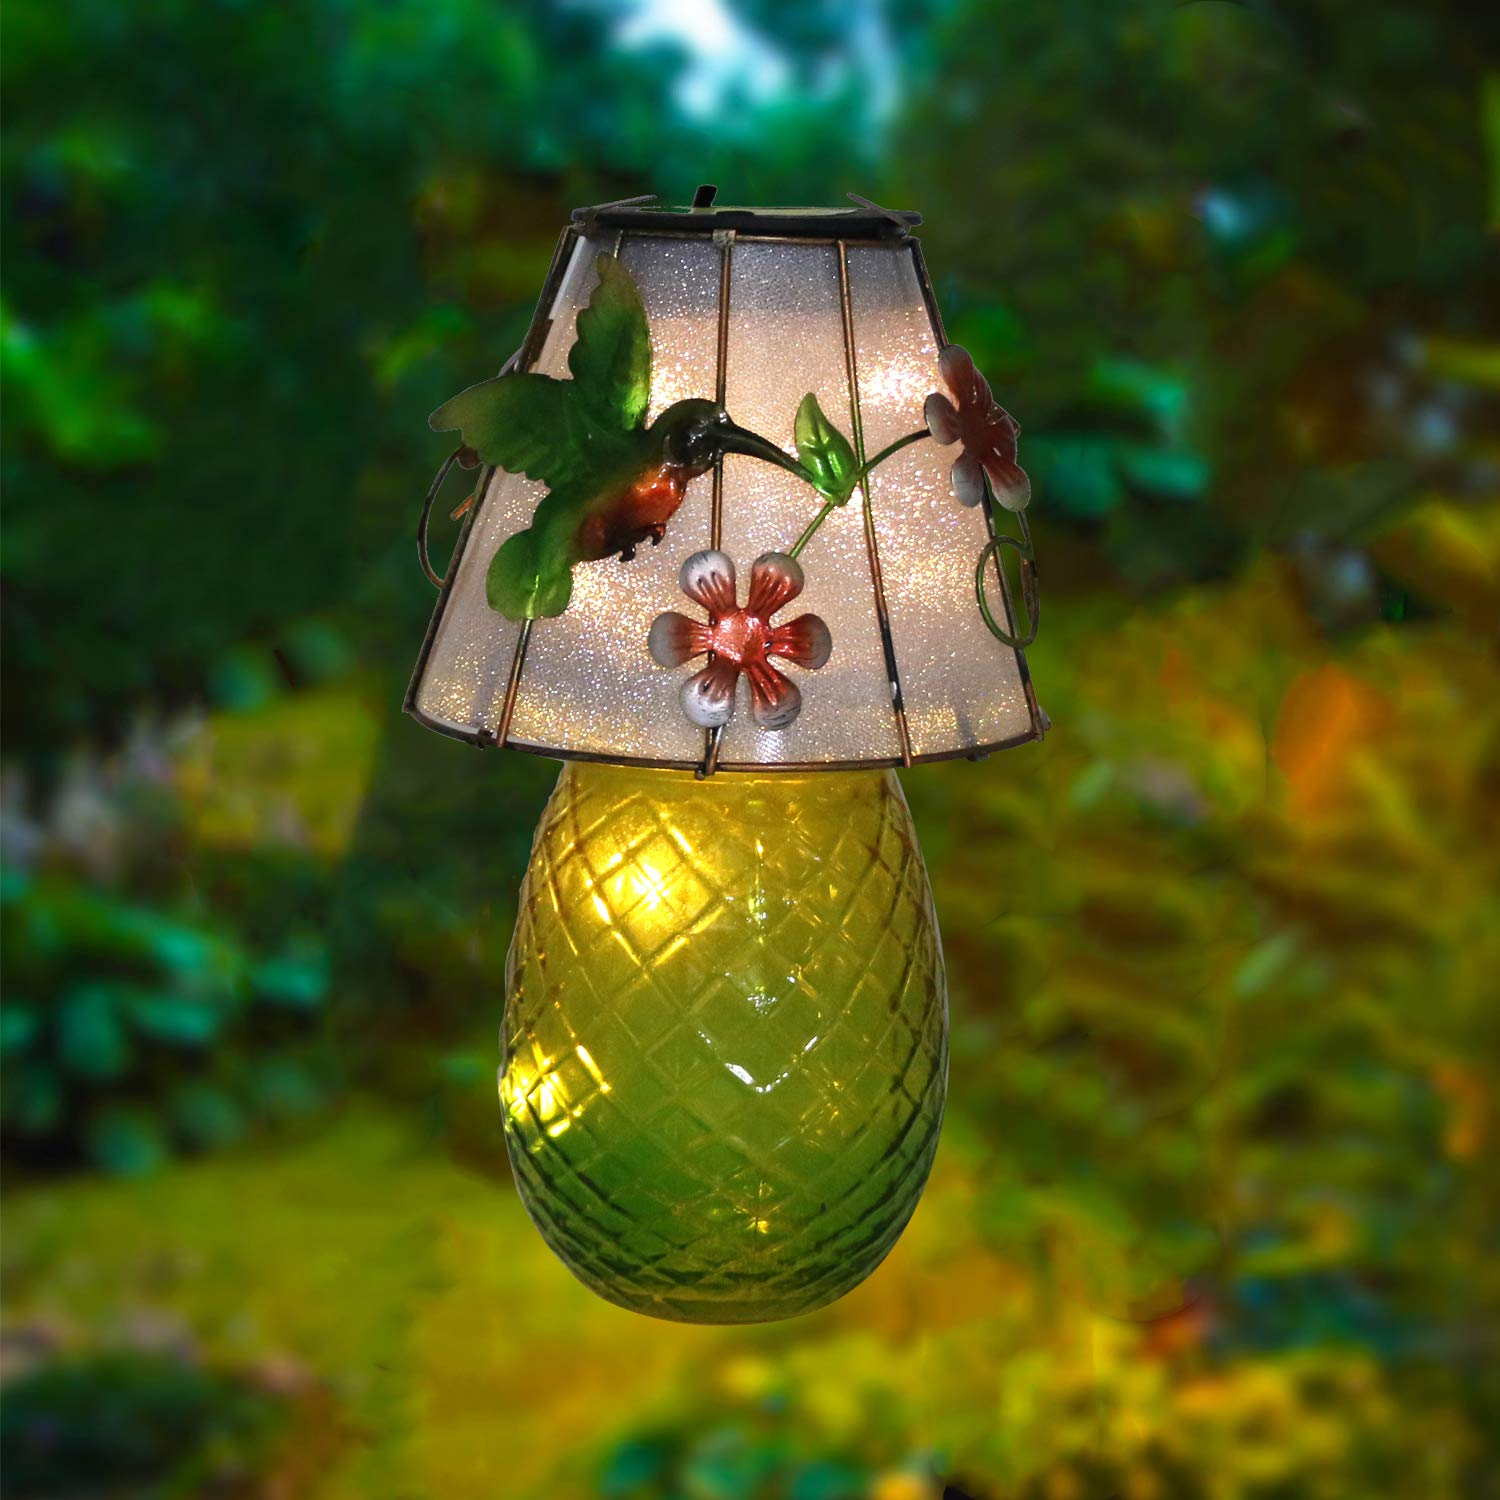 W-DIAN Pineapple Lantern Solar Lights Outdoor Garden Metal Cute Fruit Lights Decorative Landscape